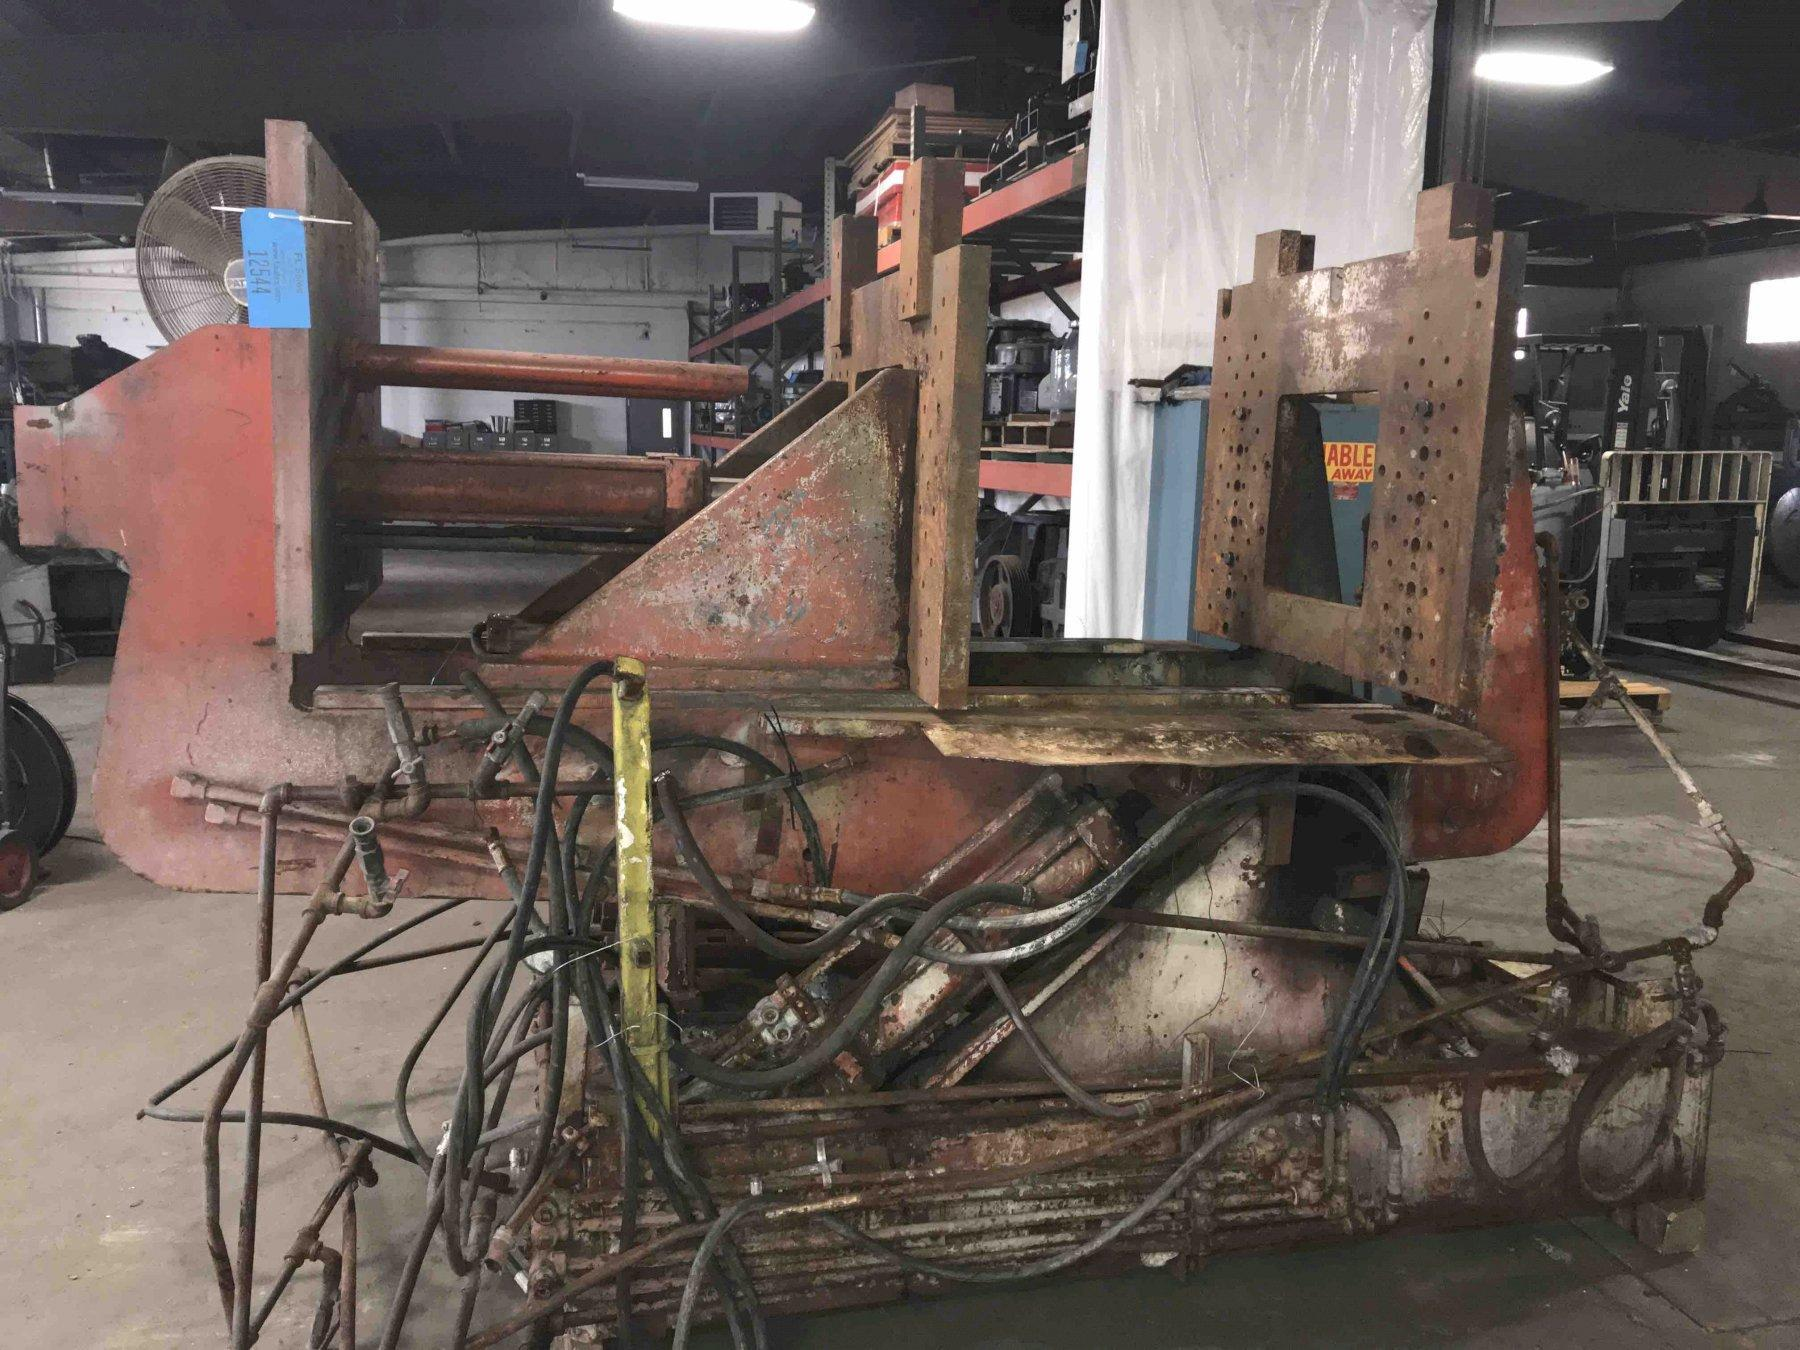 Hall model hm3 permanent molding machine s/n 305888, twin cylinder type , 28